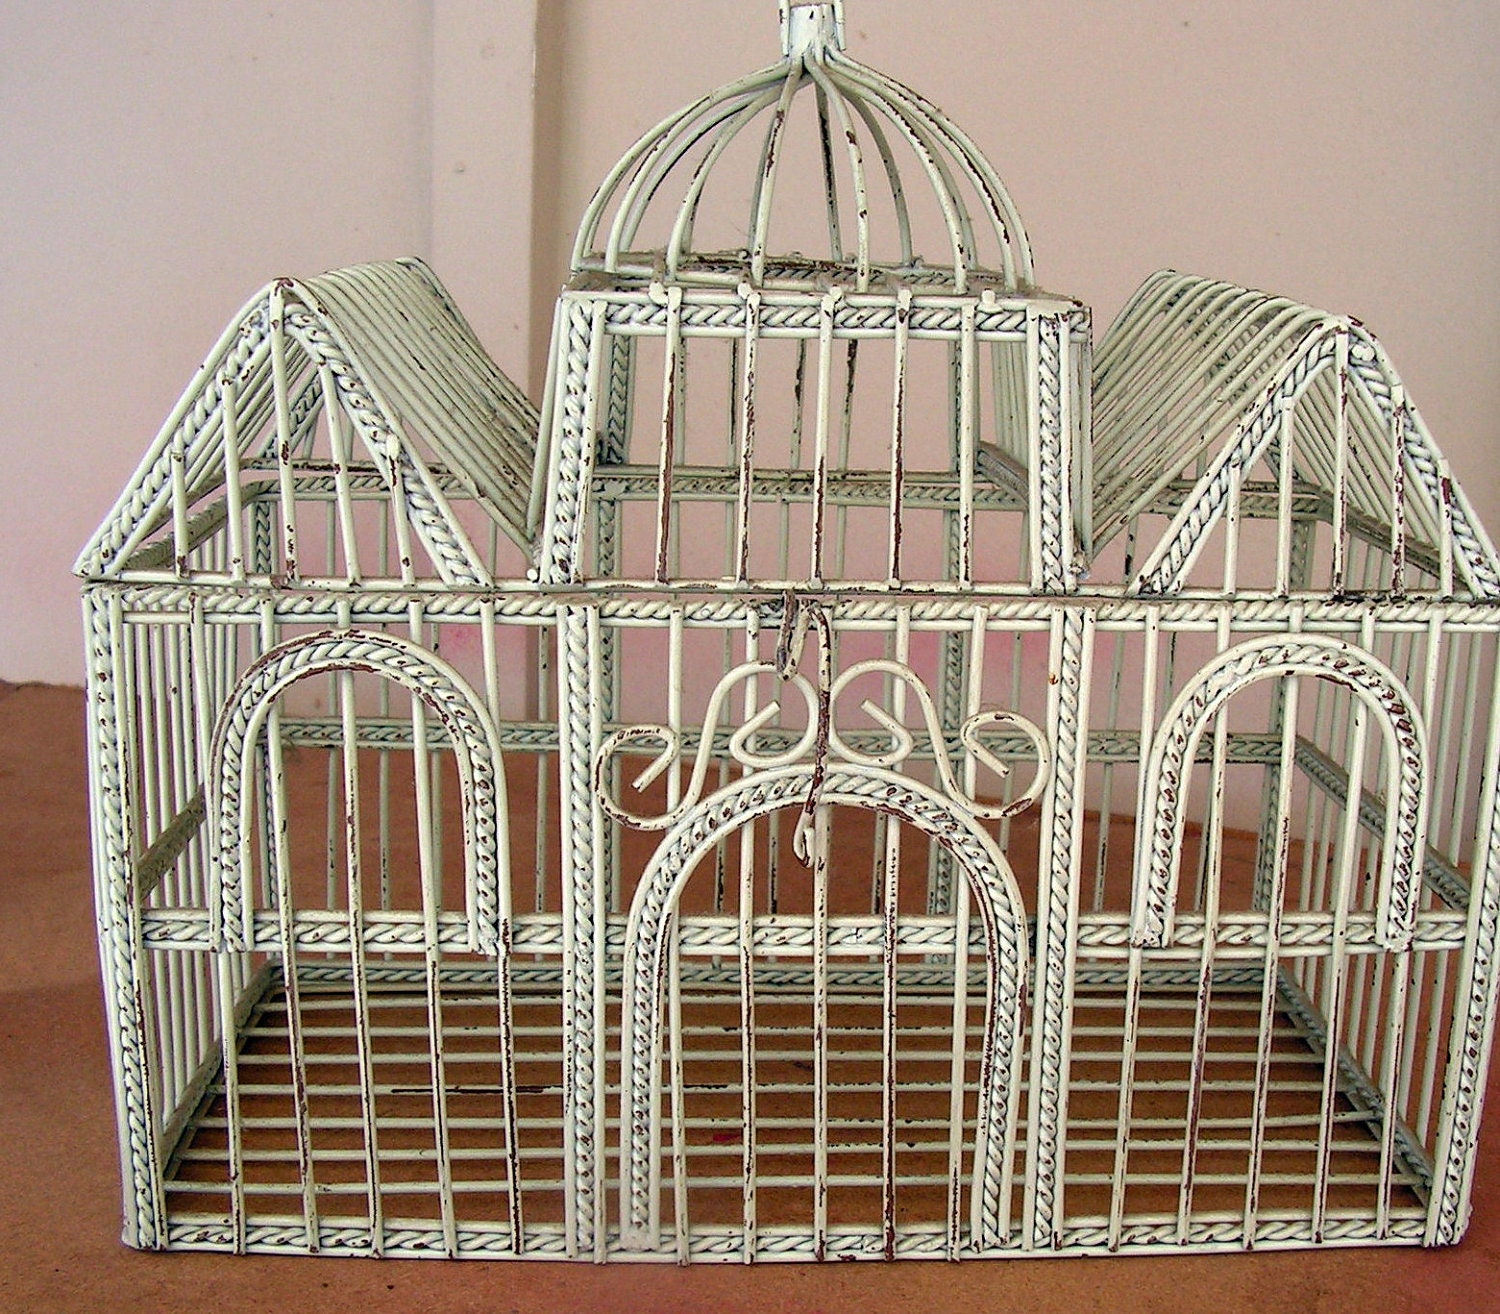 Vintage White Wire Bird Cage Decorative Shabby Chic Candle